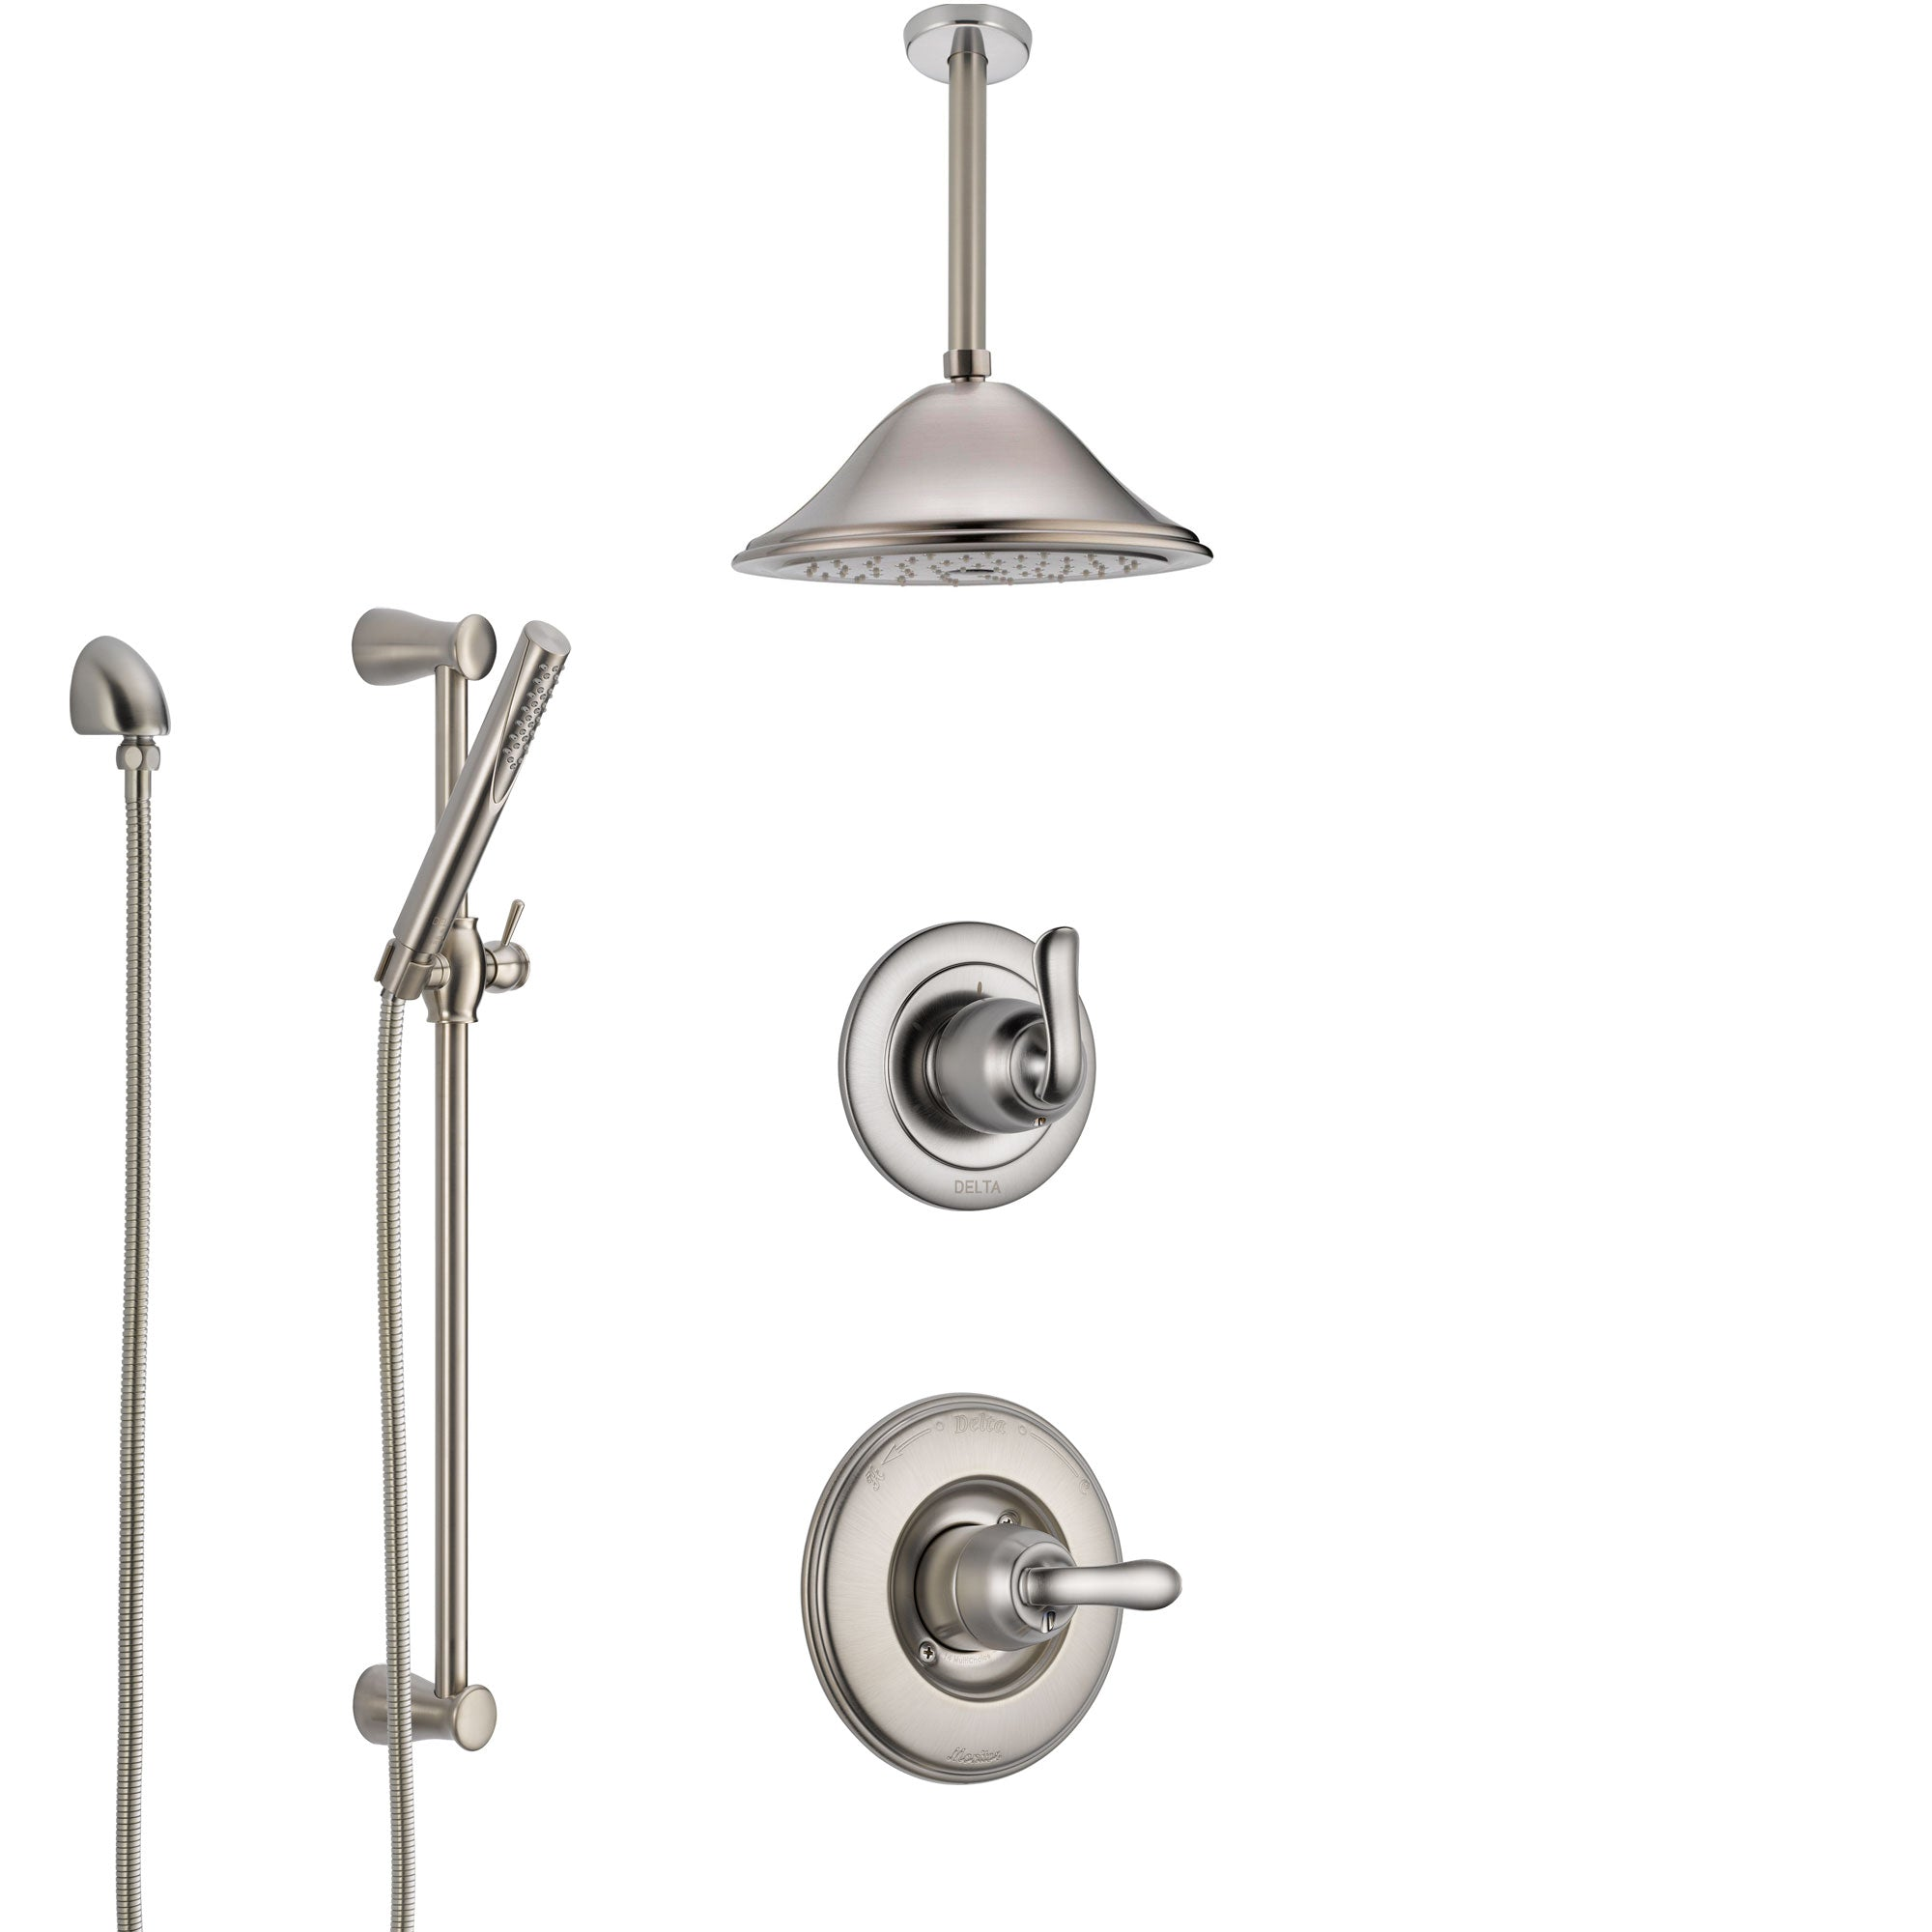 Delta Linden Stainless Steel Finish Shower System with Control Handle, Diverter, Ceiling Mount Showerhead, and Hand Shower with Slidebar SS1494SS8